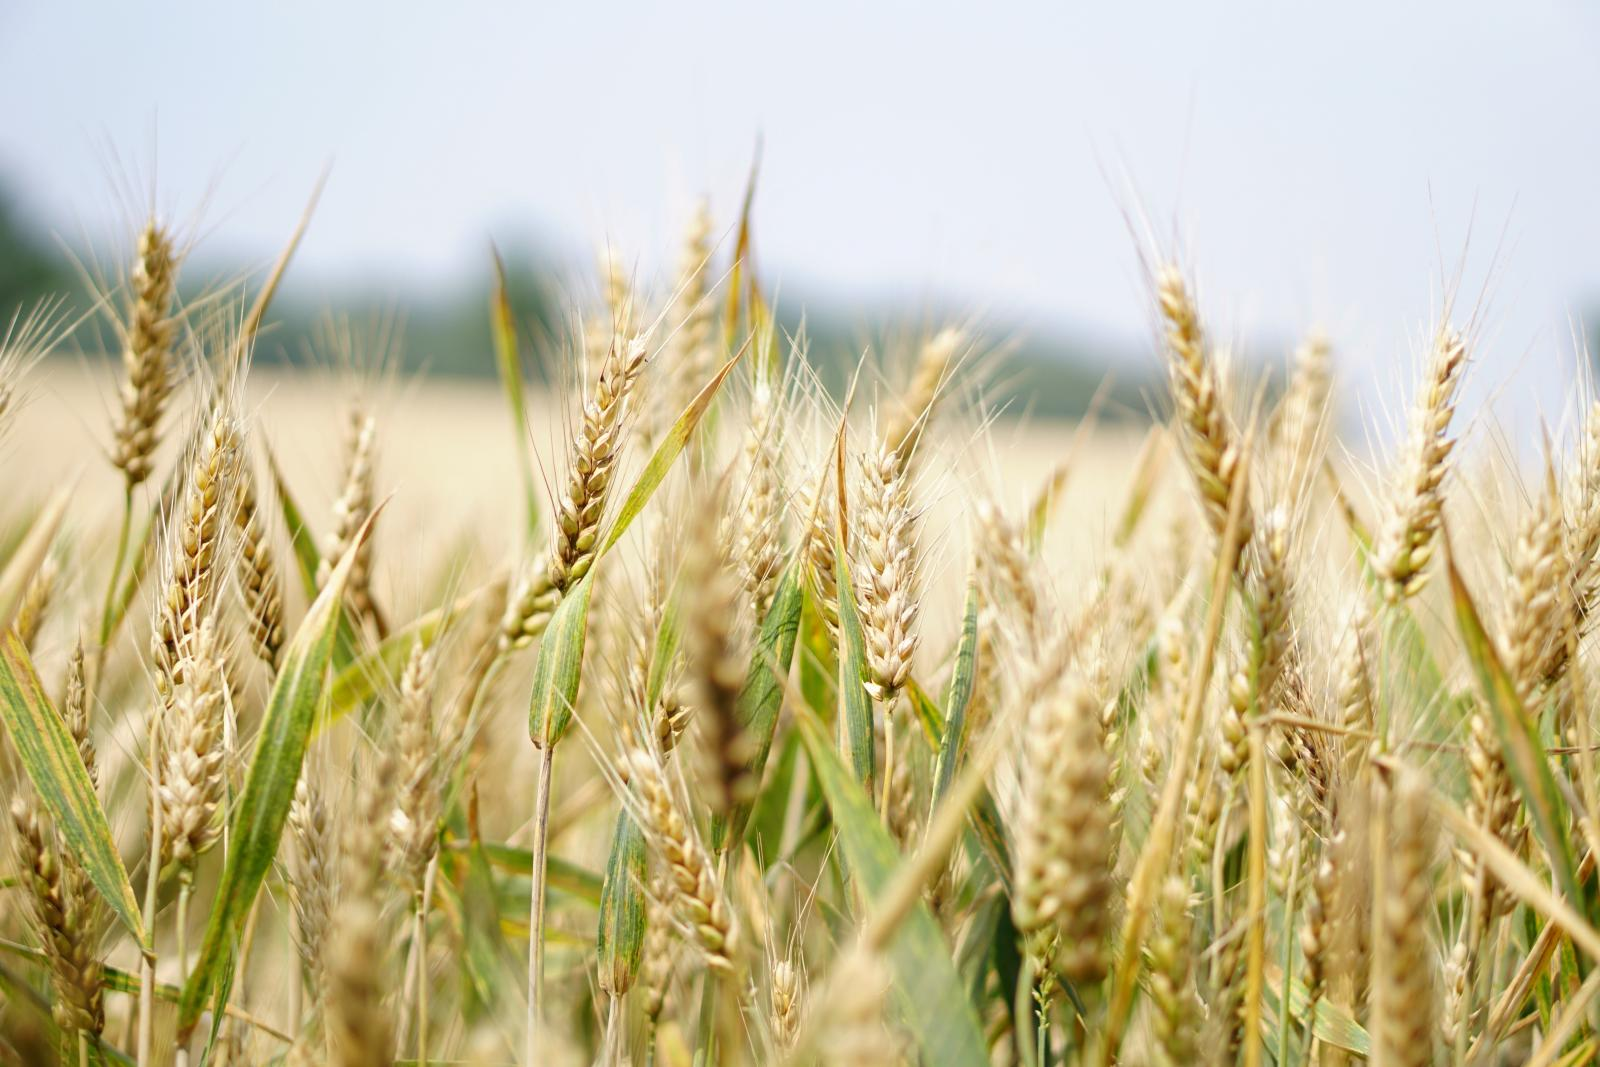 Arable crops. Photo credit: Pexels